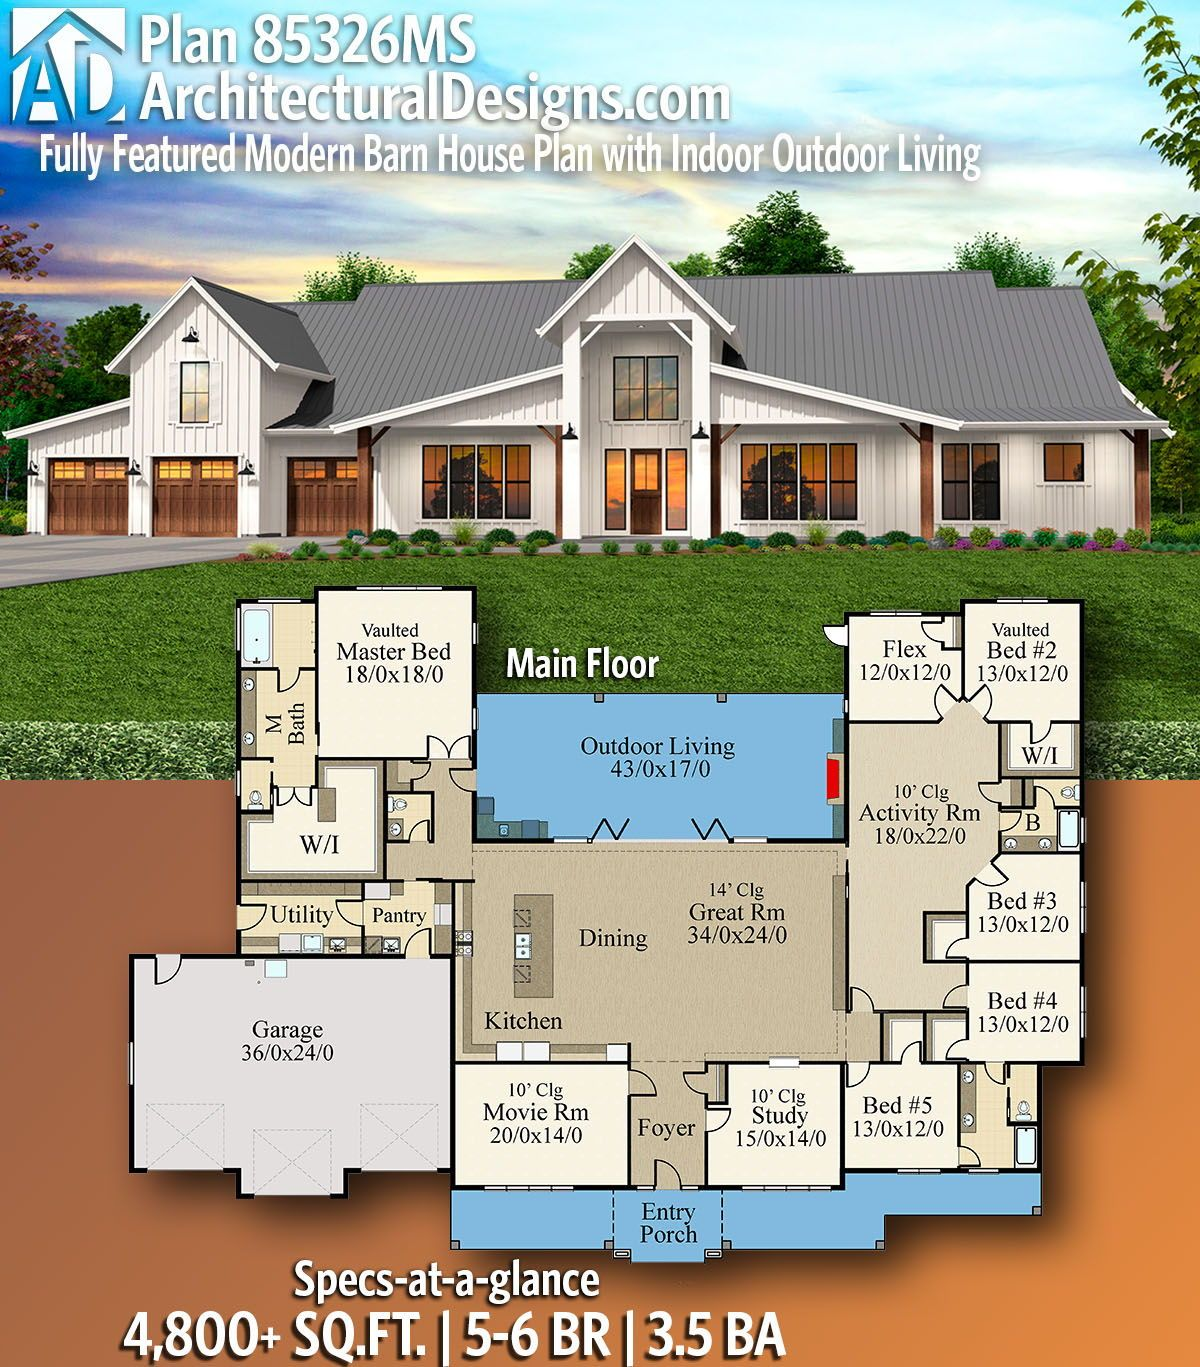 Plan 85326ms Fully Featured Modern Barn House Plan With Indoor Outdoor Living Modern Barn House Barn House Plans Barn Style House